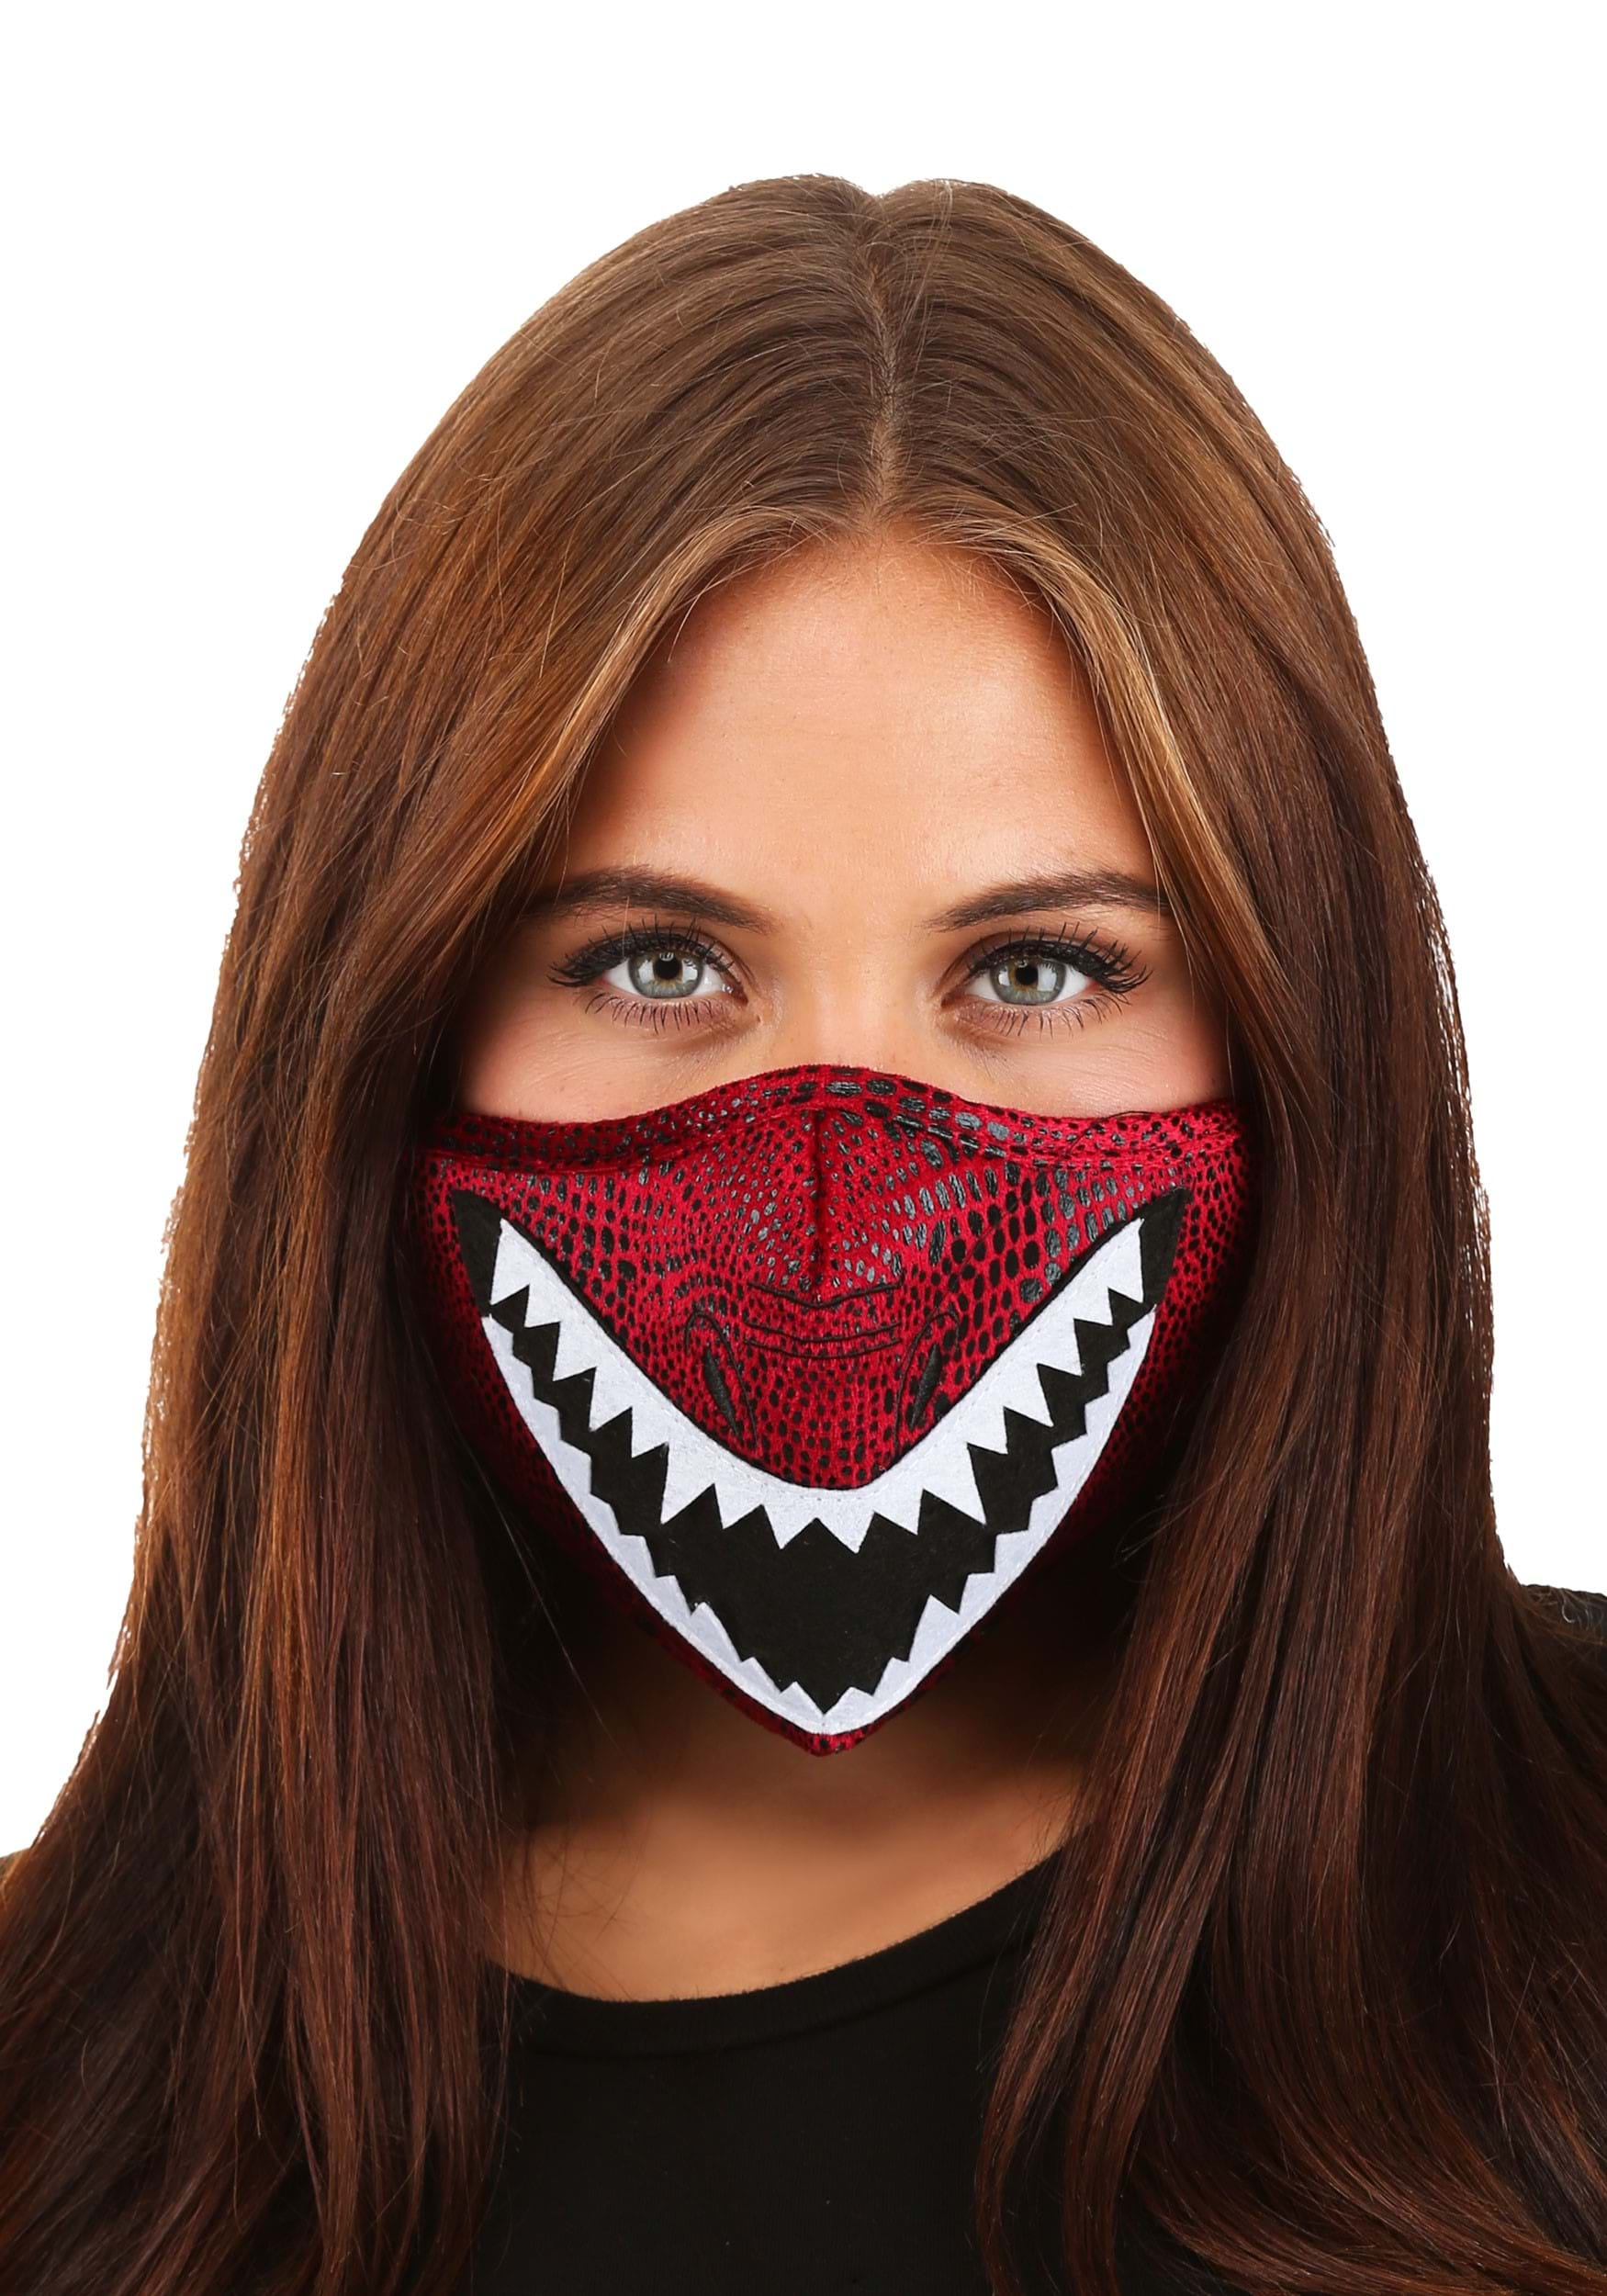 Dragon Face Mask for Adults